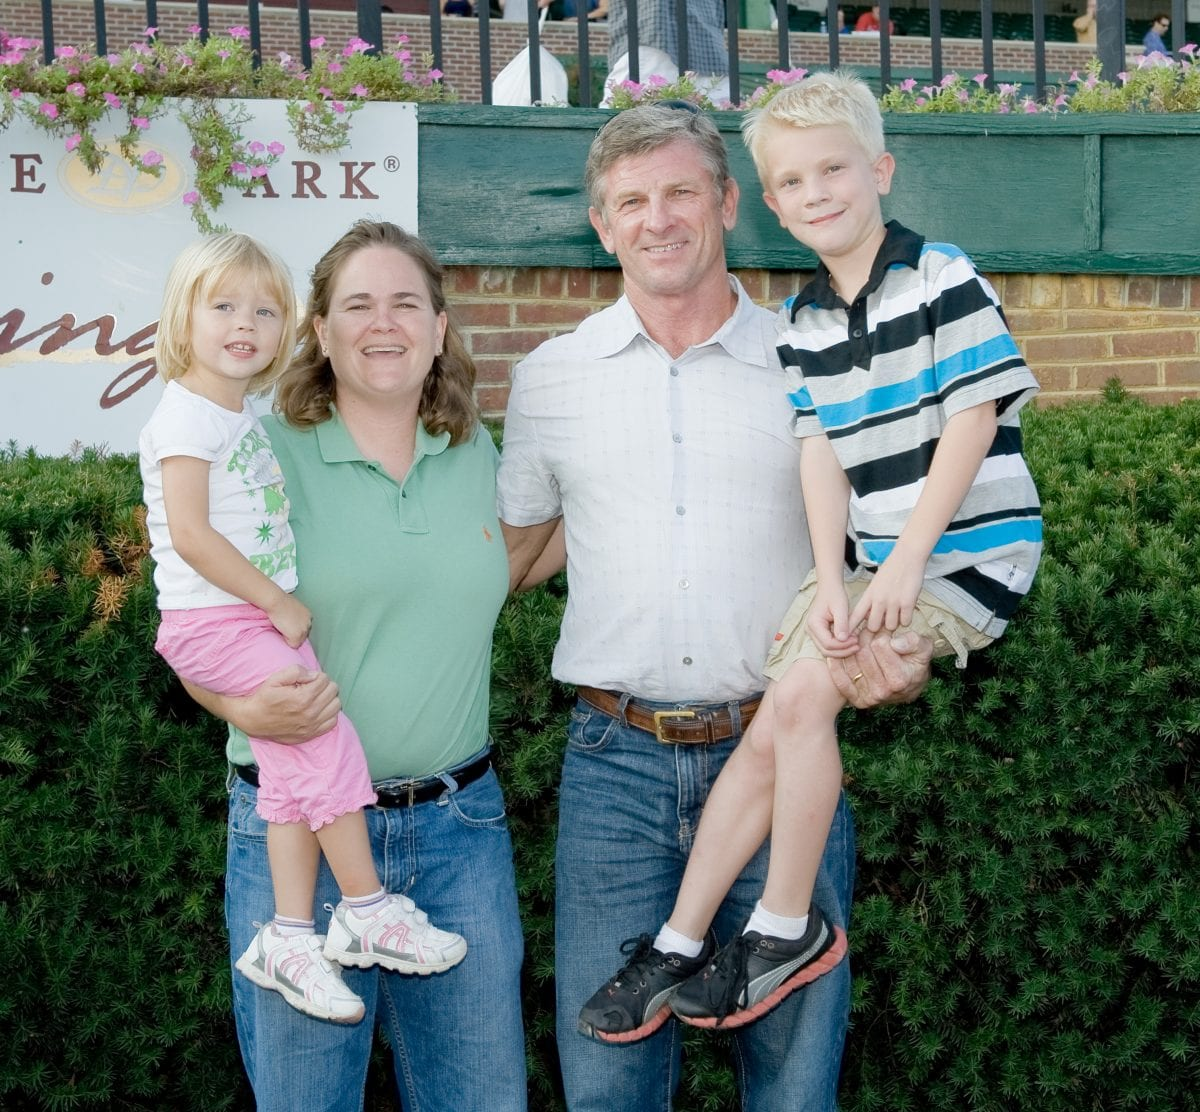 Porter Racing Stable's family affair